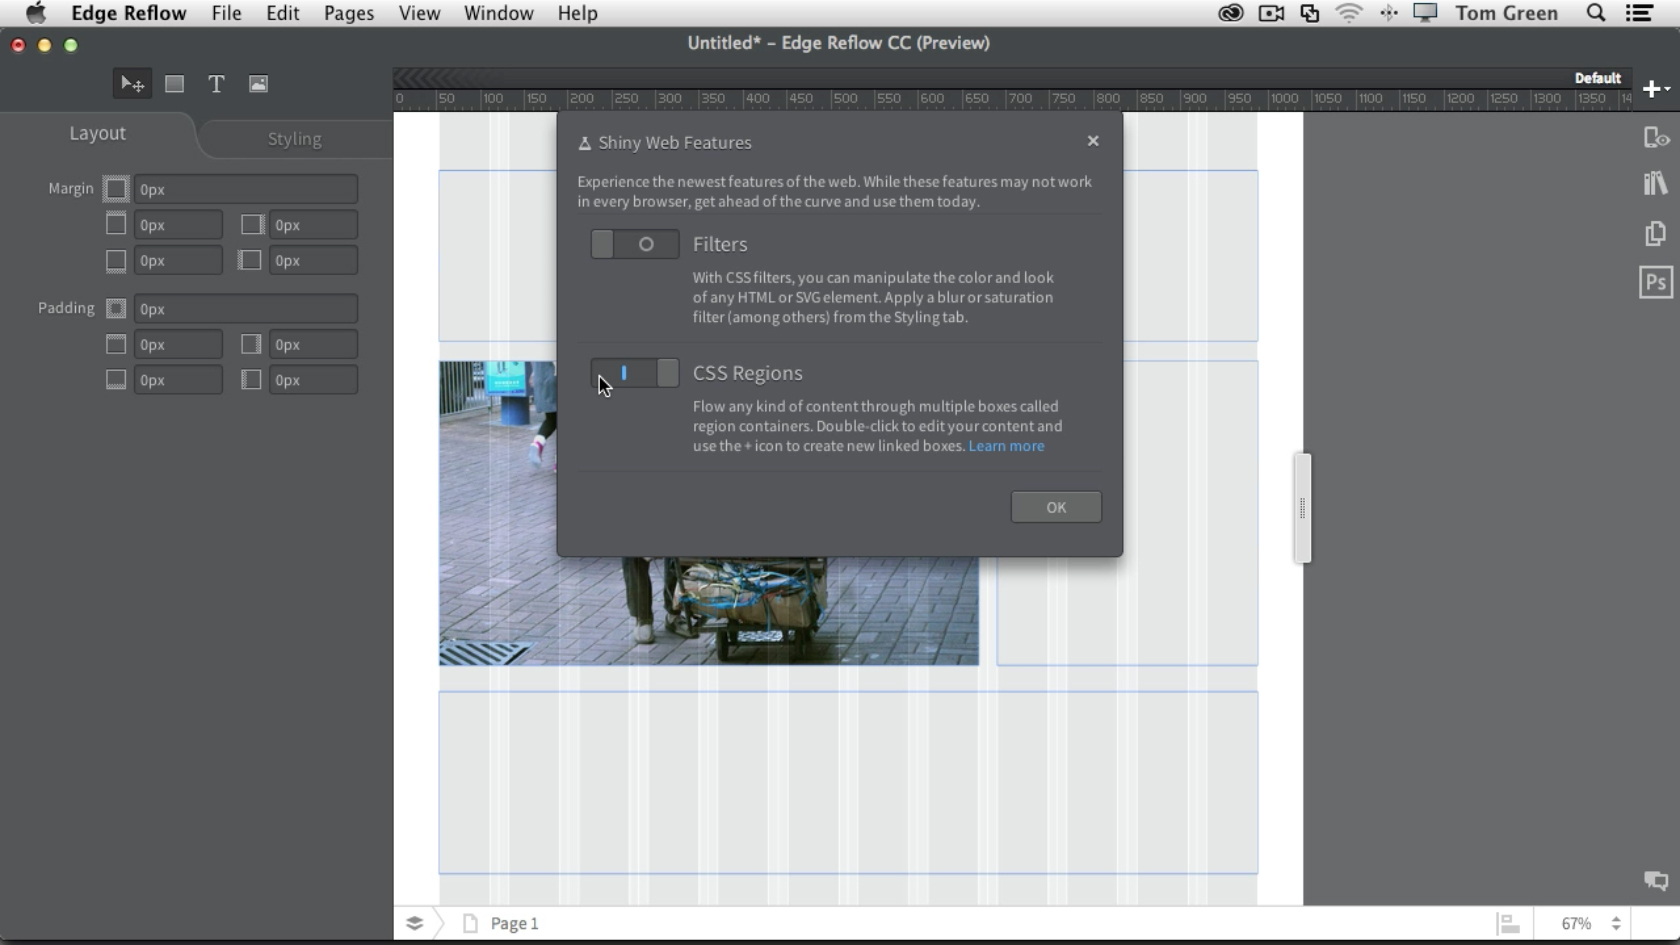 Adobe Edge Reflow CC: The CSS Regions Tool of Edge Reflow